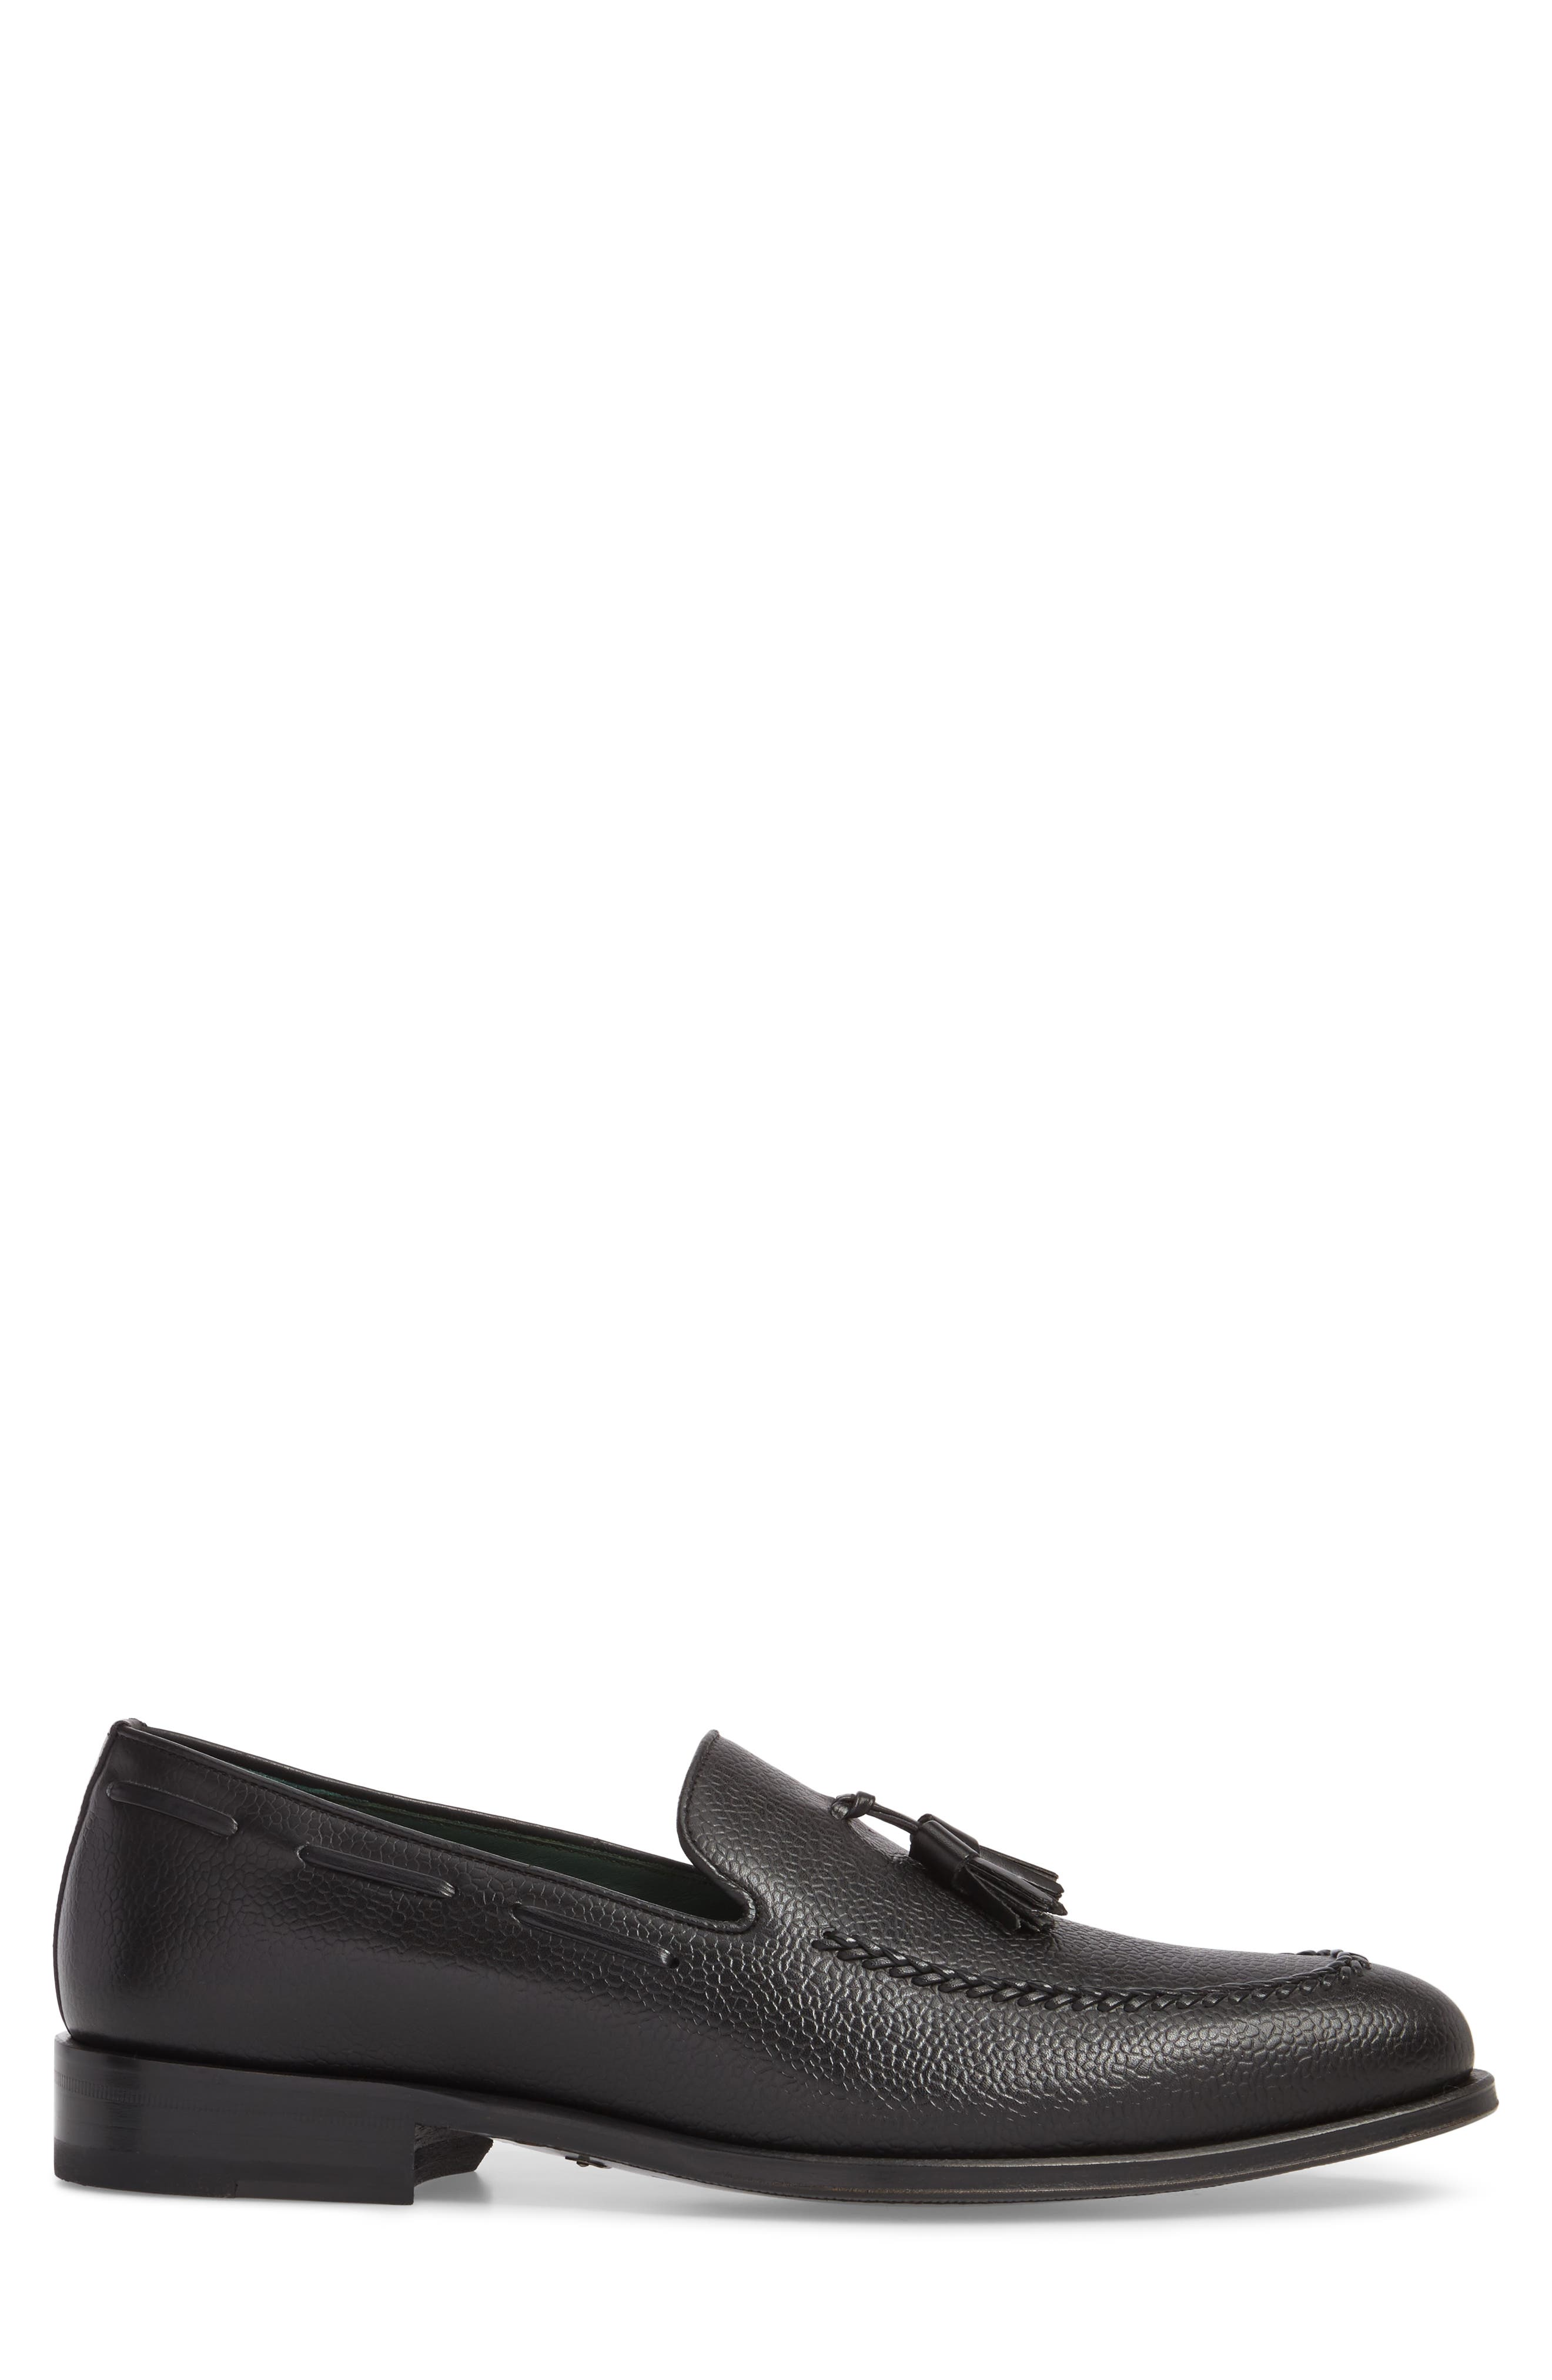 Sabina Tasseled Venetian Loafer,                             Alternate thumbnail 3, color,                             Black Leather